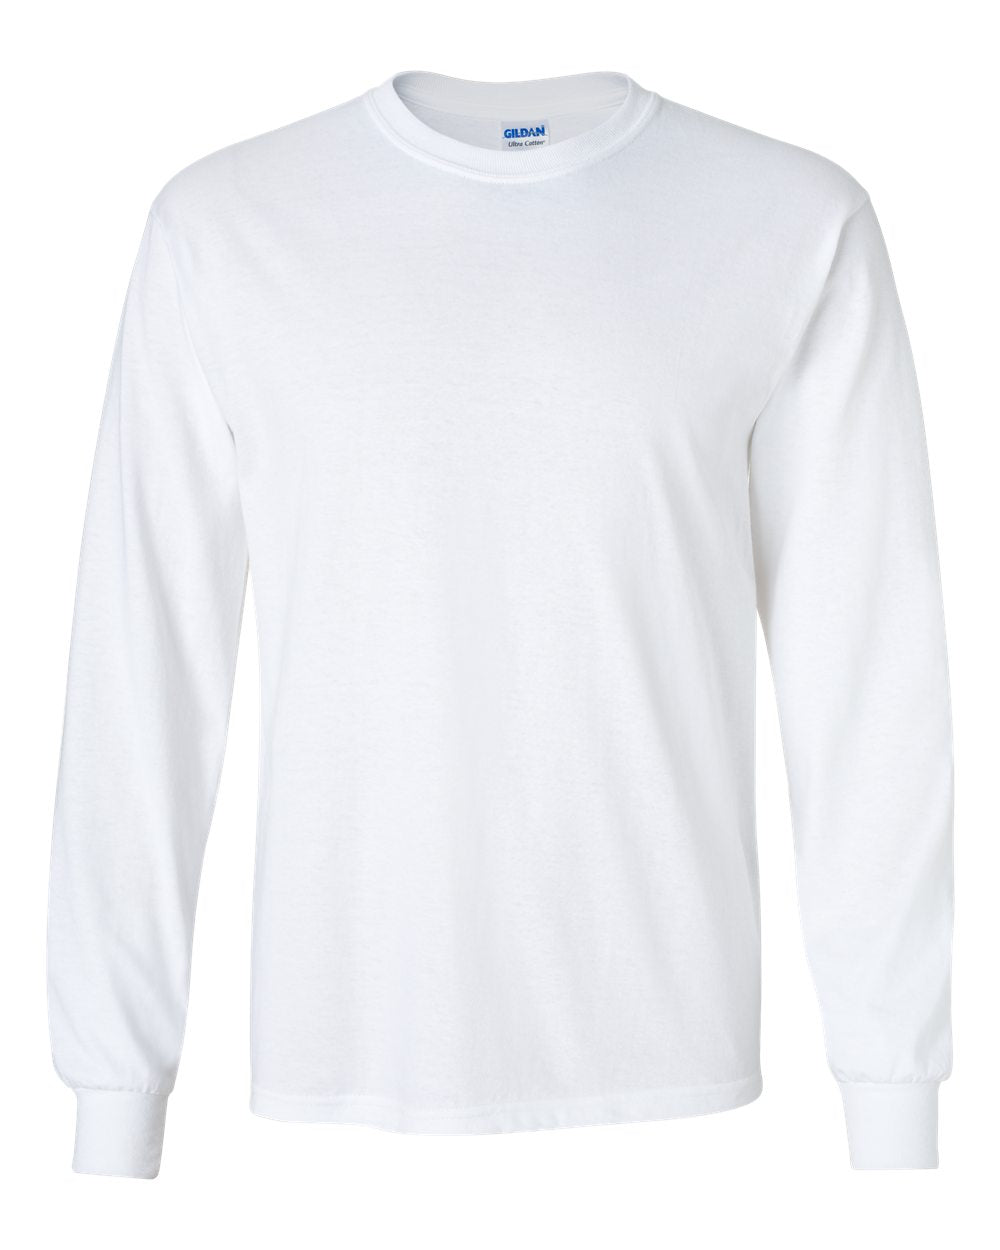 Gildan - Ultra Cotton Long Sleeve T-Shirt - 2400